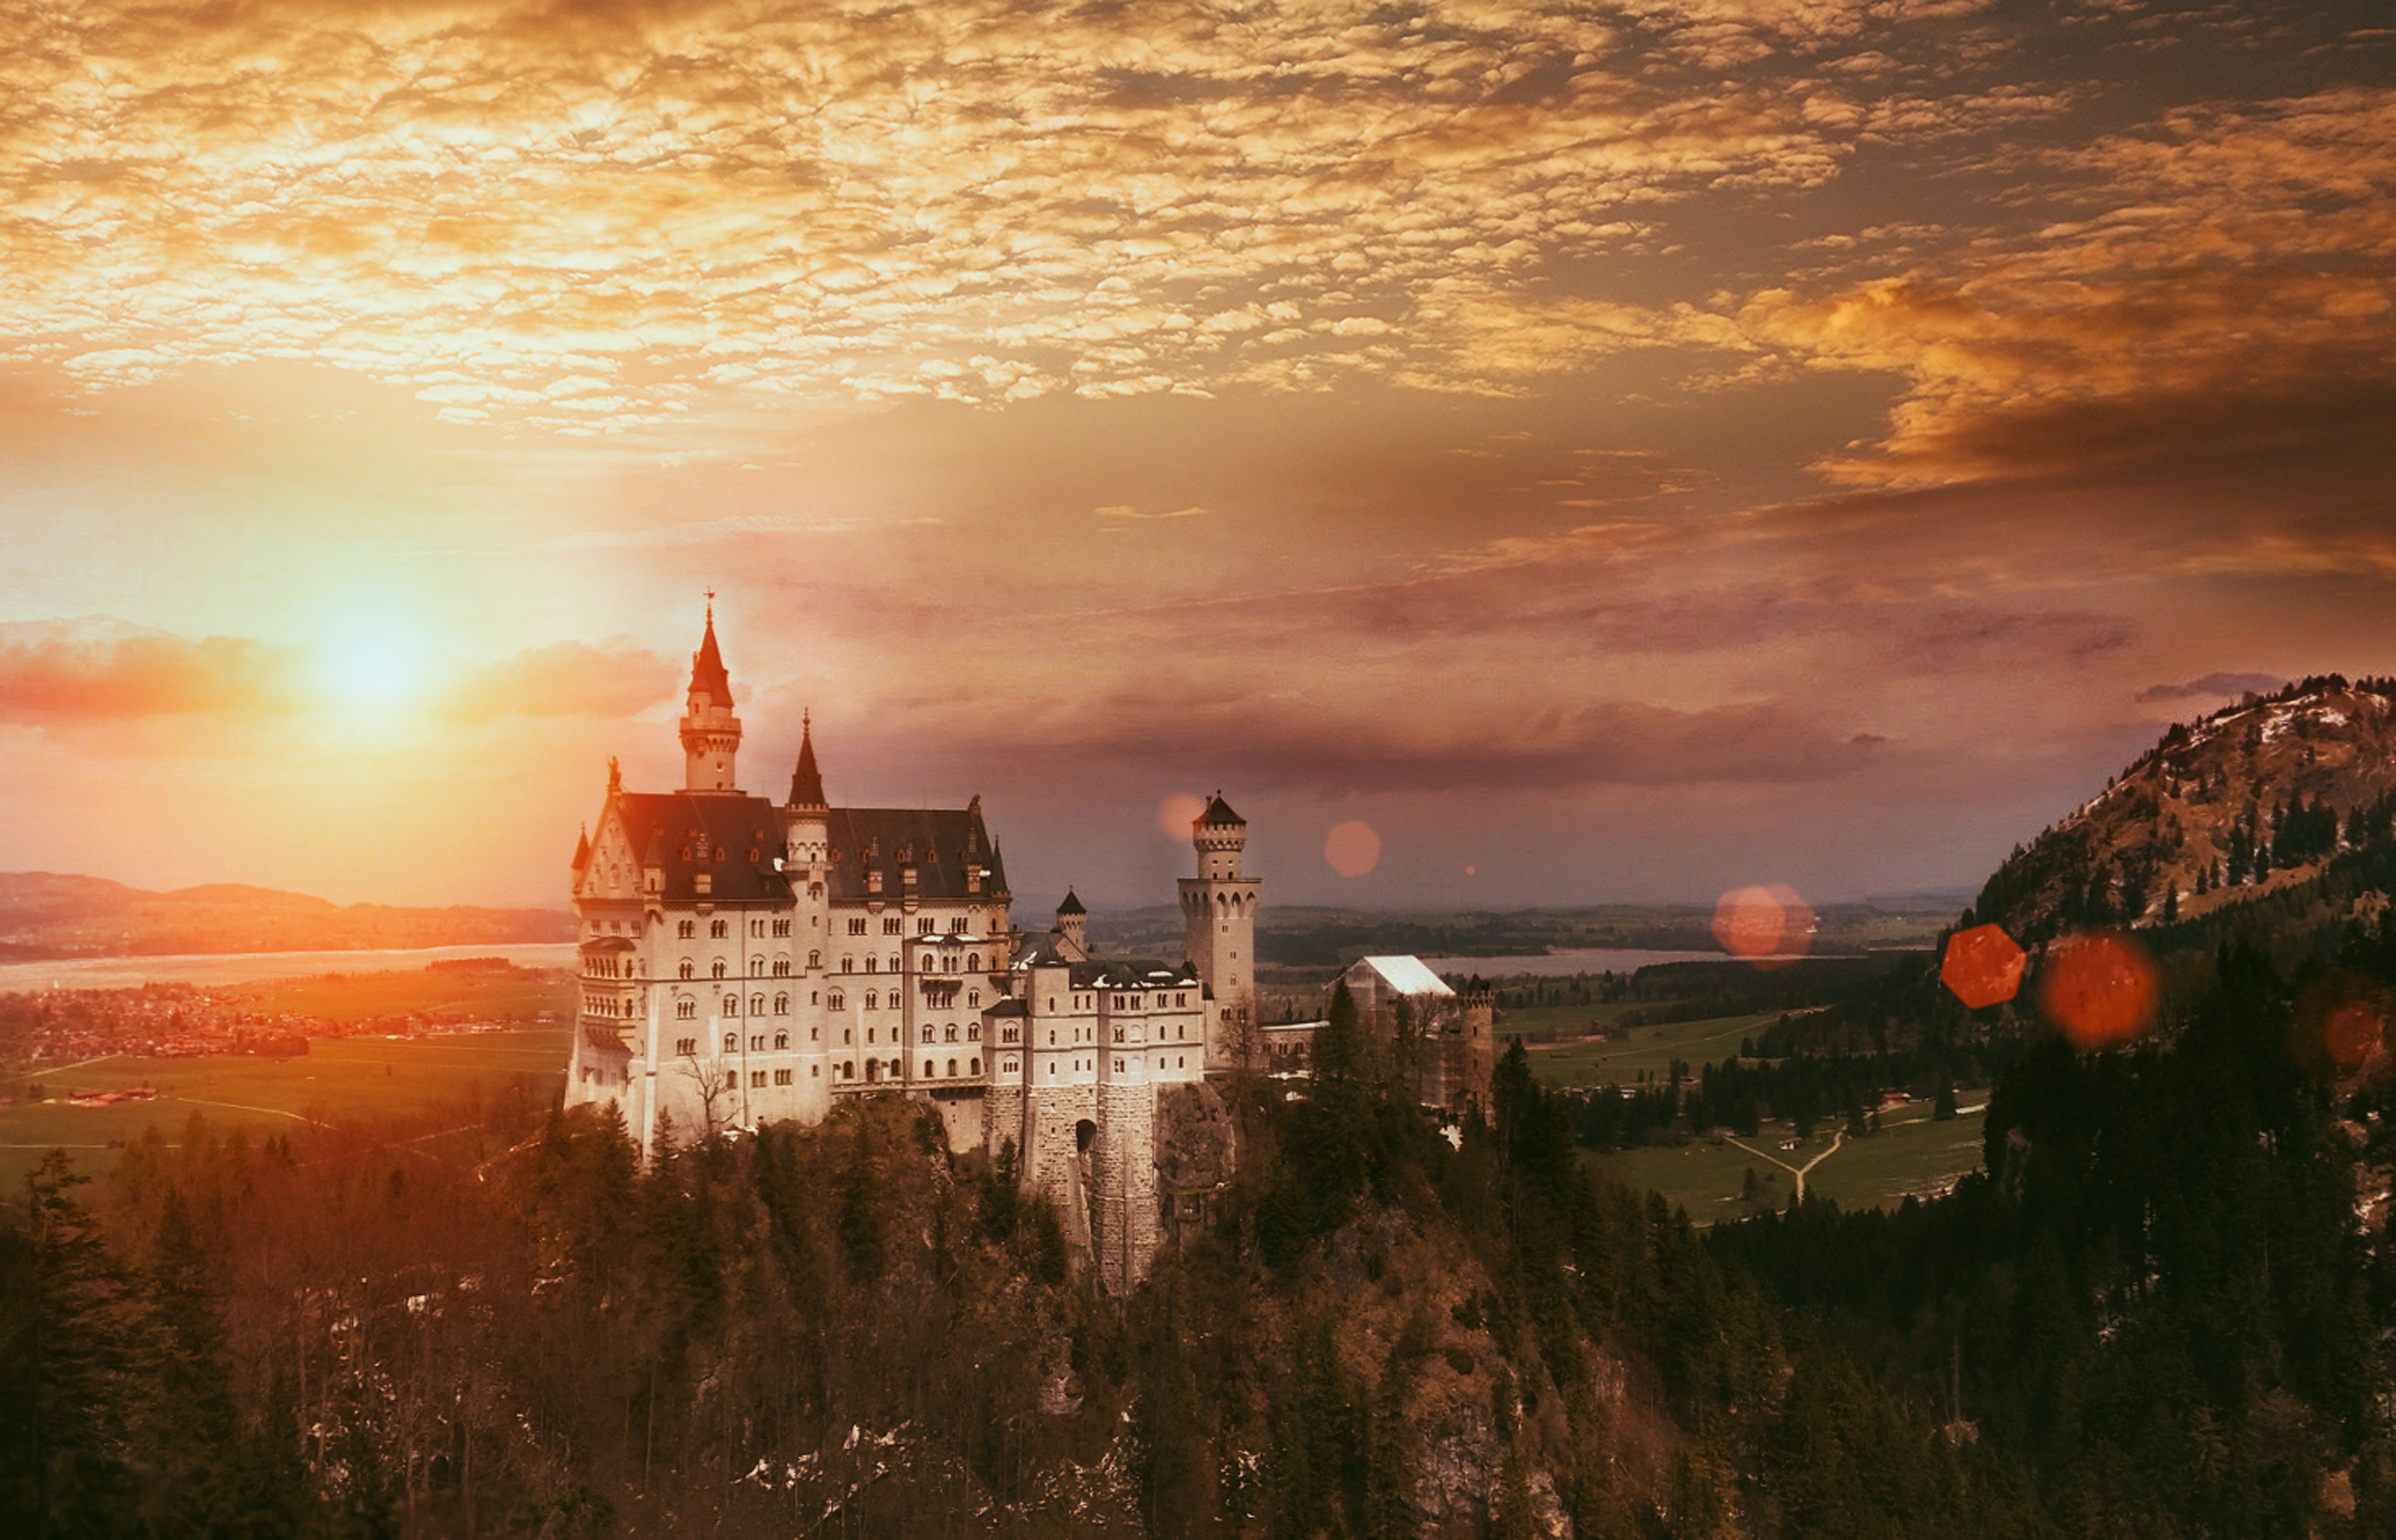 5 Fairy Tale-Like Castles You Can Actually Visit